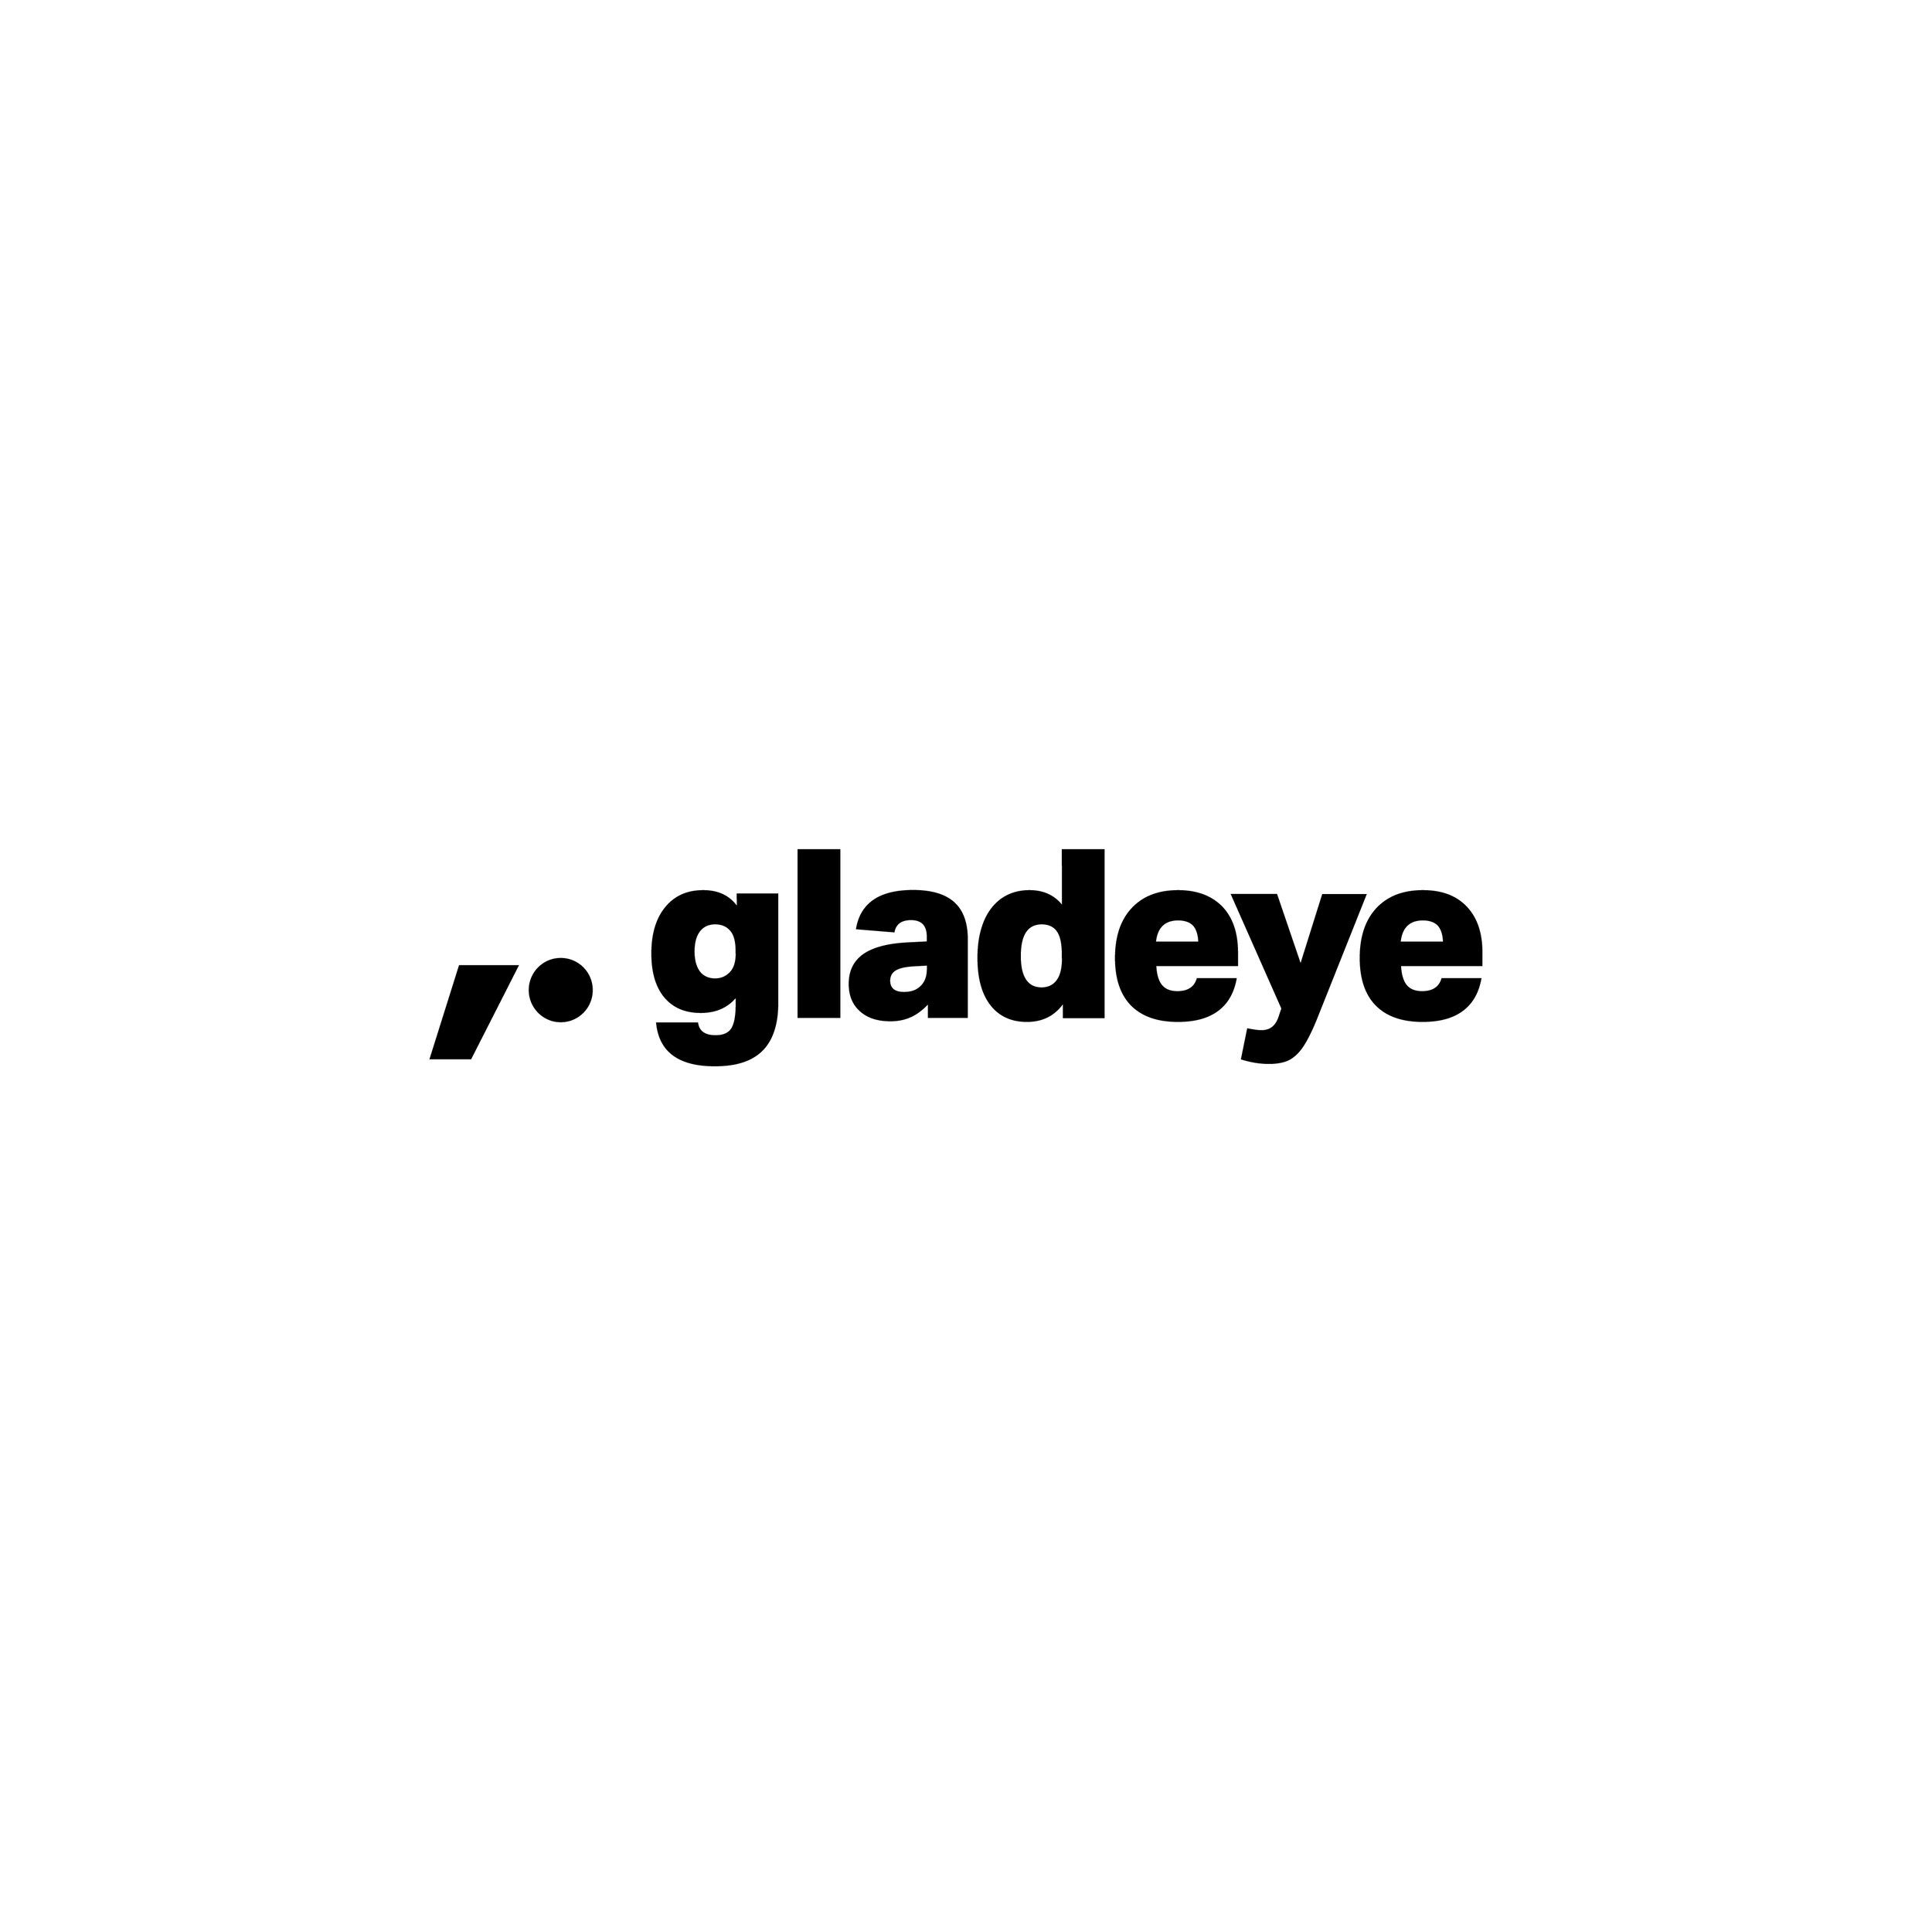 Gladeye is a digital innovations agency inspired by technology, designed for people.  We make digital experiences that work for people. Since 2006 we've brought exceptional technical capabilities to creative storytelling, brand experiences and product design.   Website:  www.gladeye.com